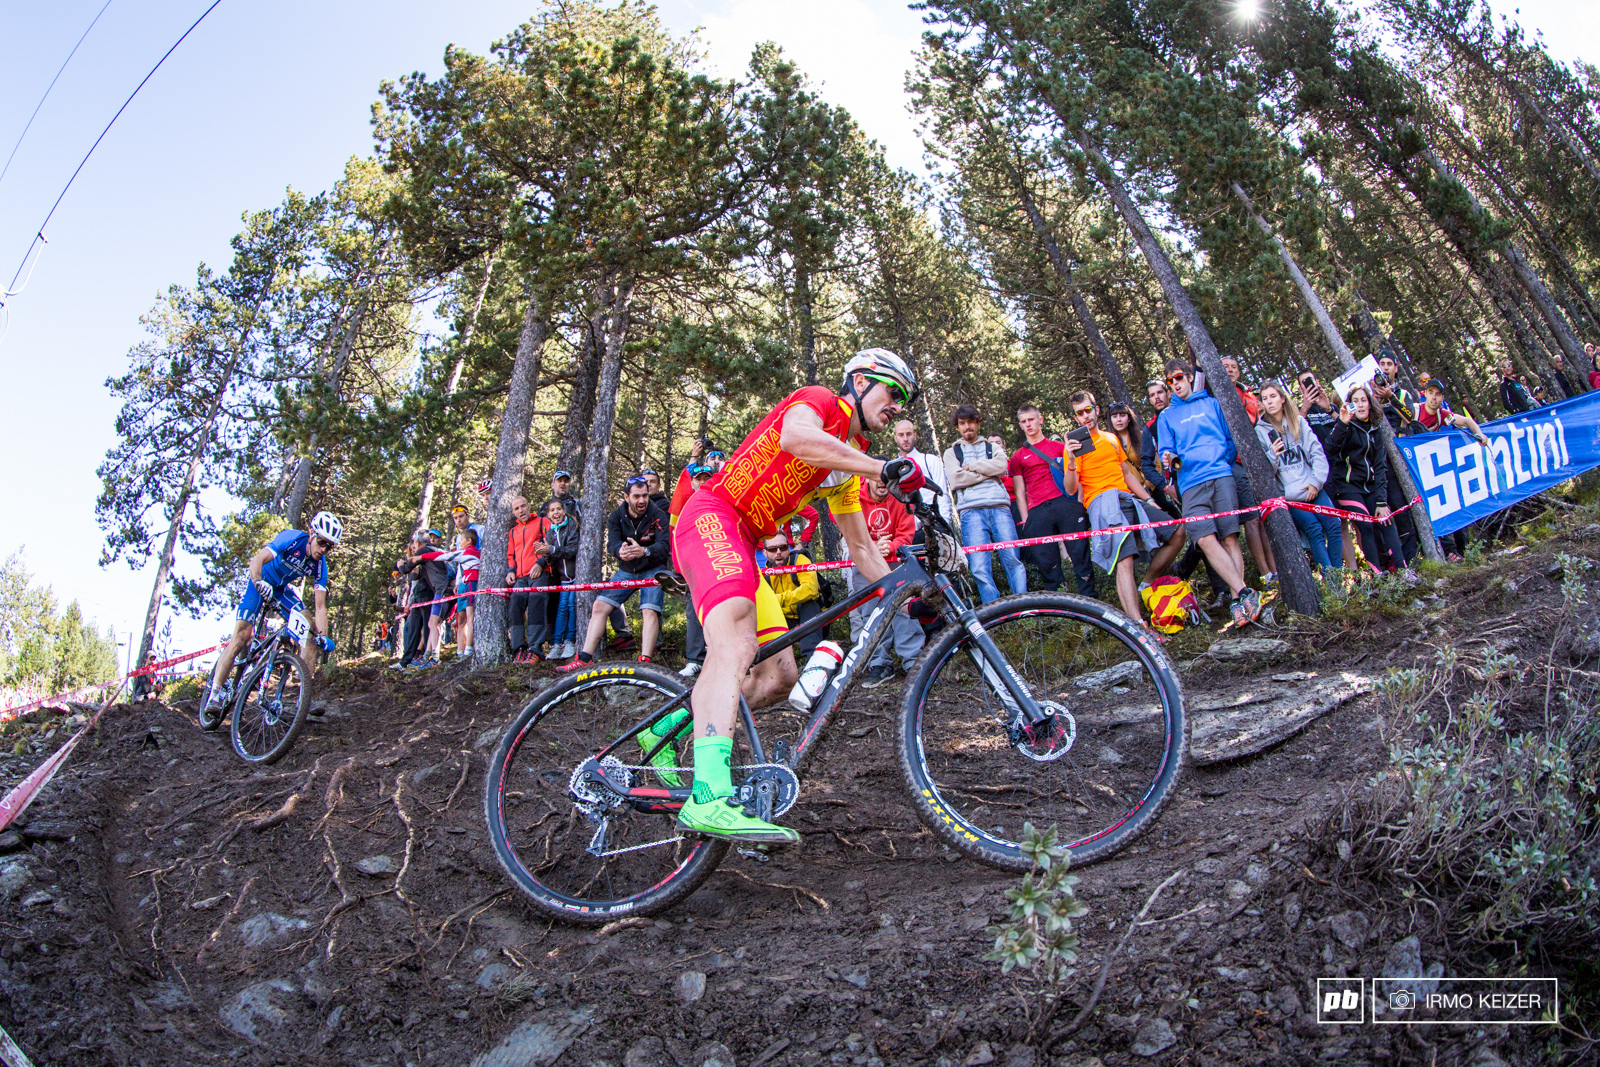 Carlos Coloma rode a strong race to finish 11th. The crowds cheered the rider on.